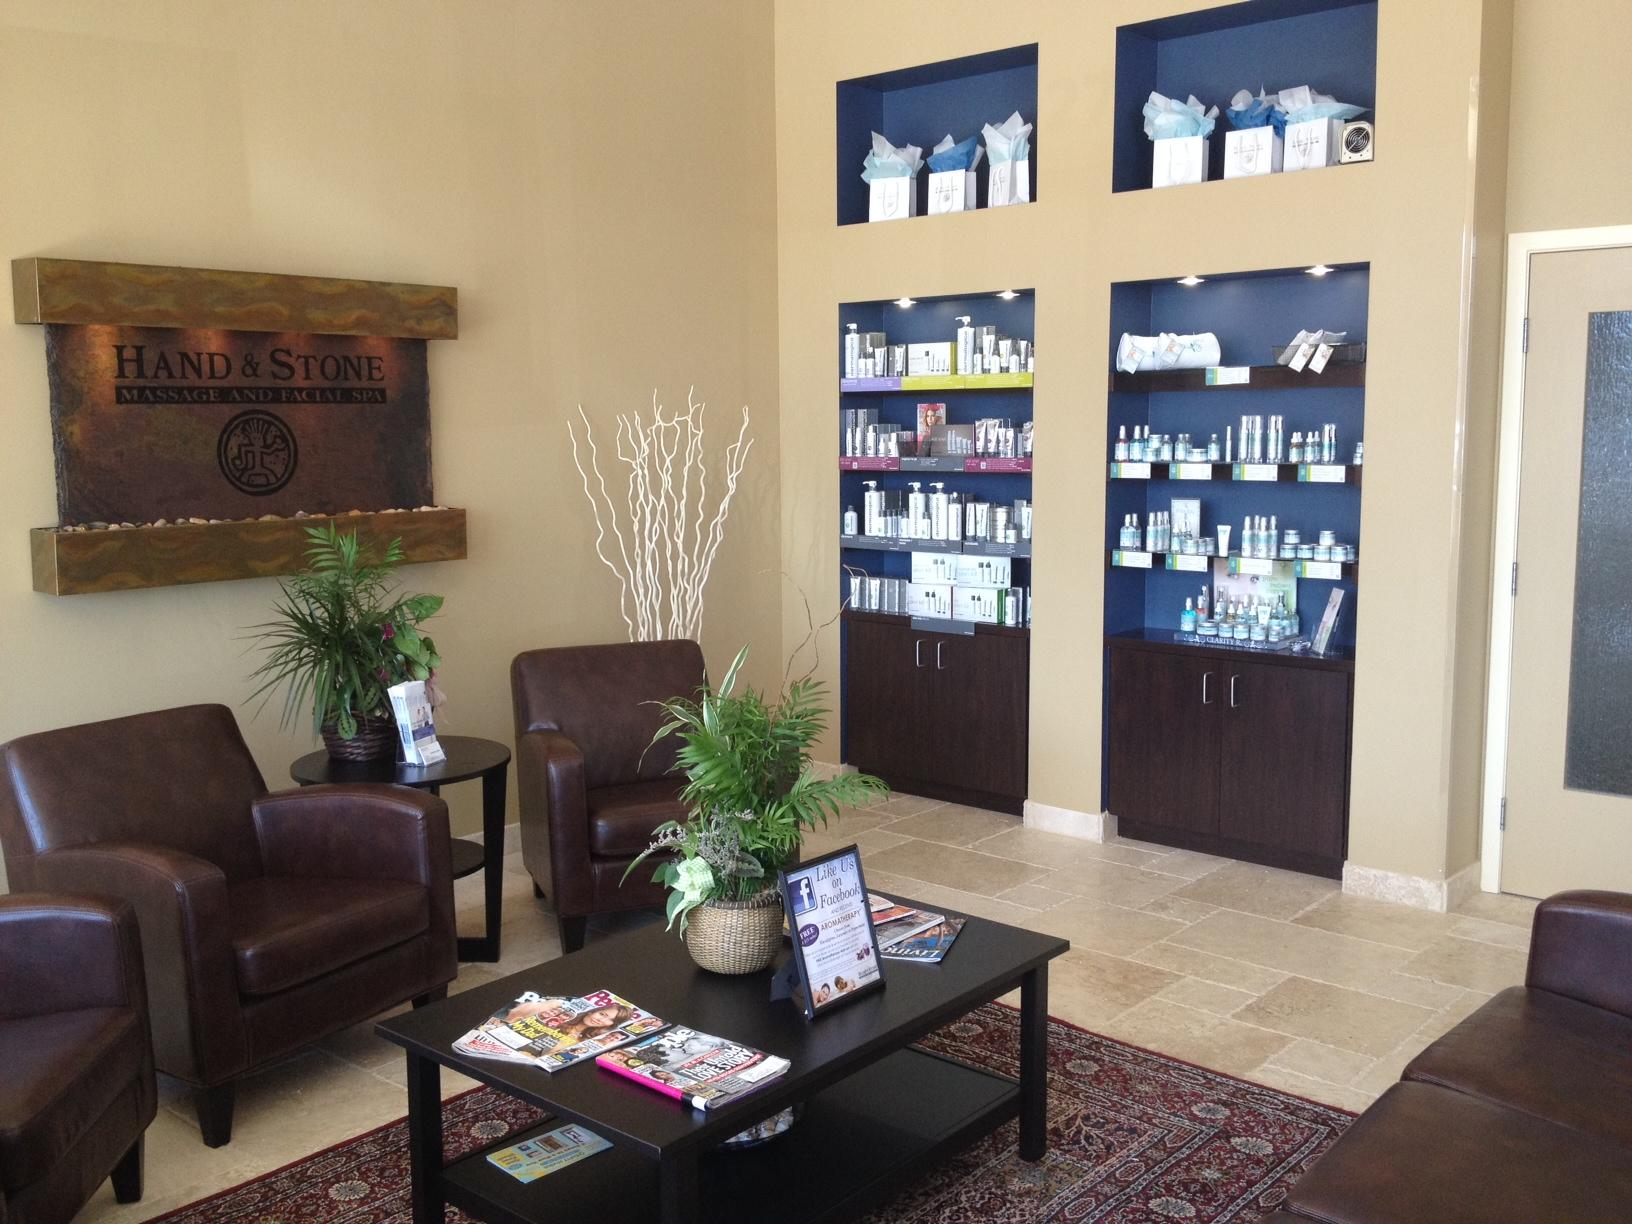 Spa in FL Sarasota 34239 Hand & Stone Massage and Facial Spa 3800 S. Tamiami Trail  (941)444-1747